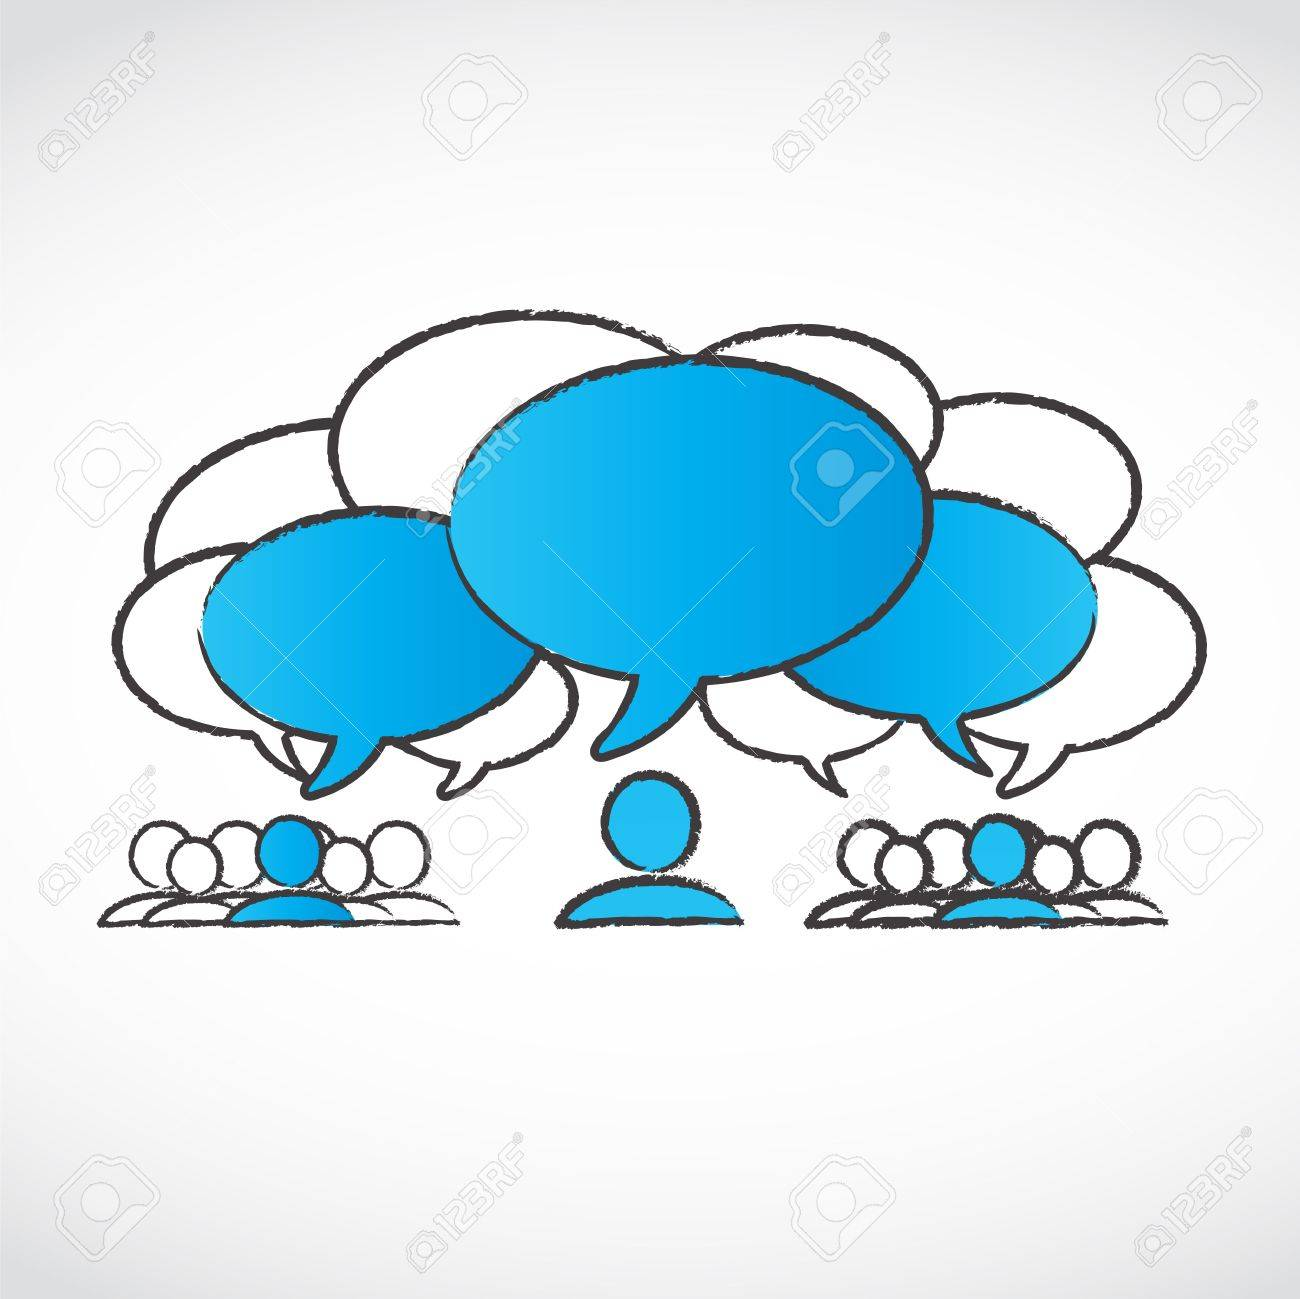 different ideas speech bubbles Stock Vector - 15600597